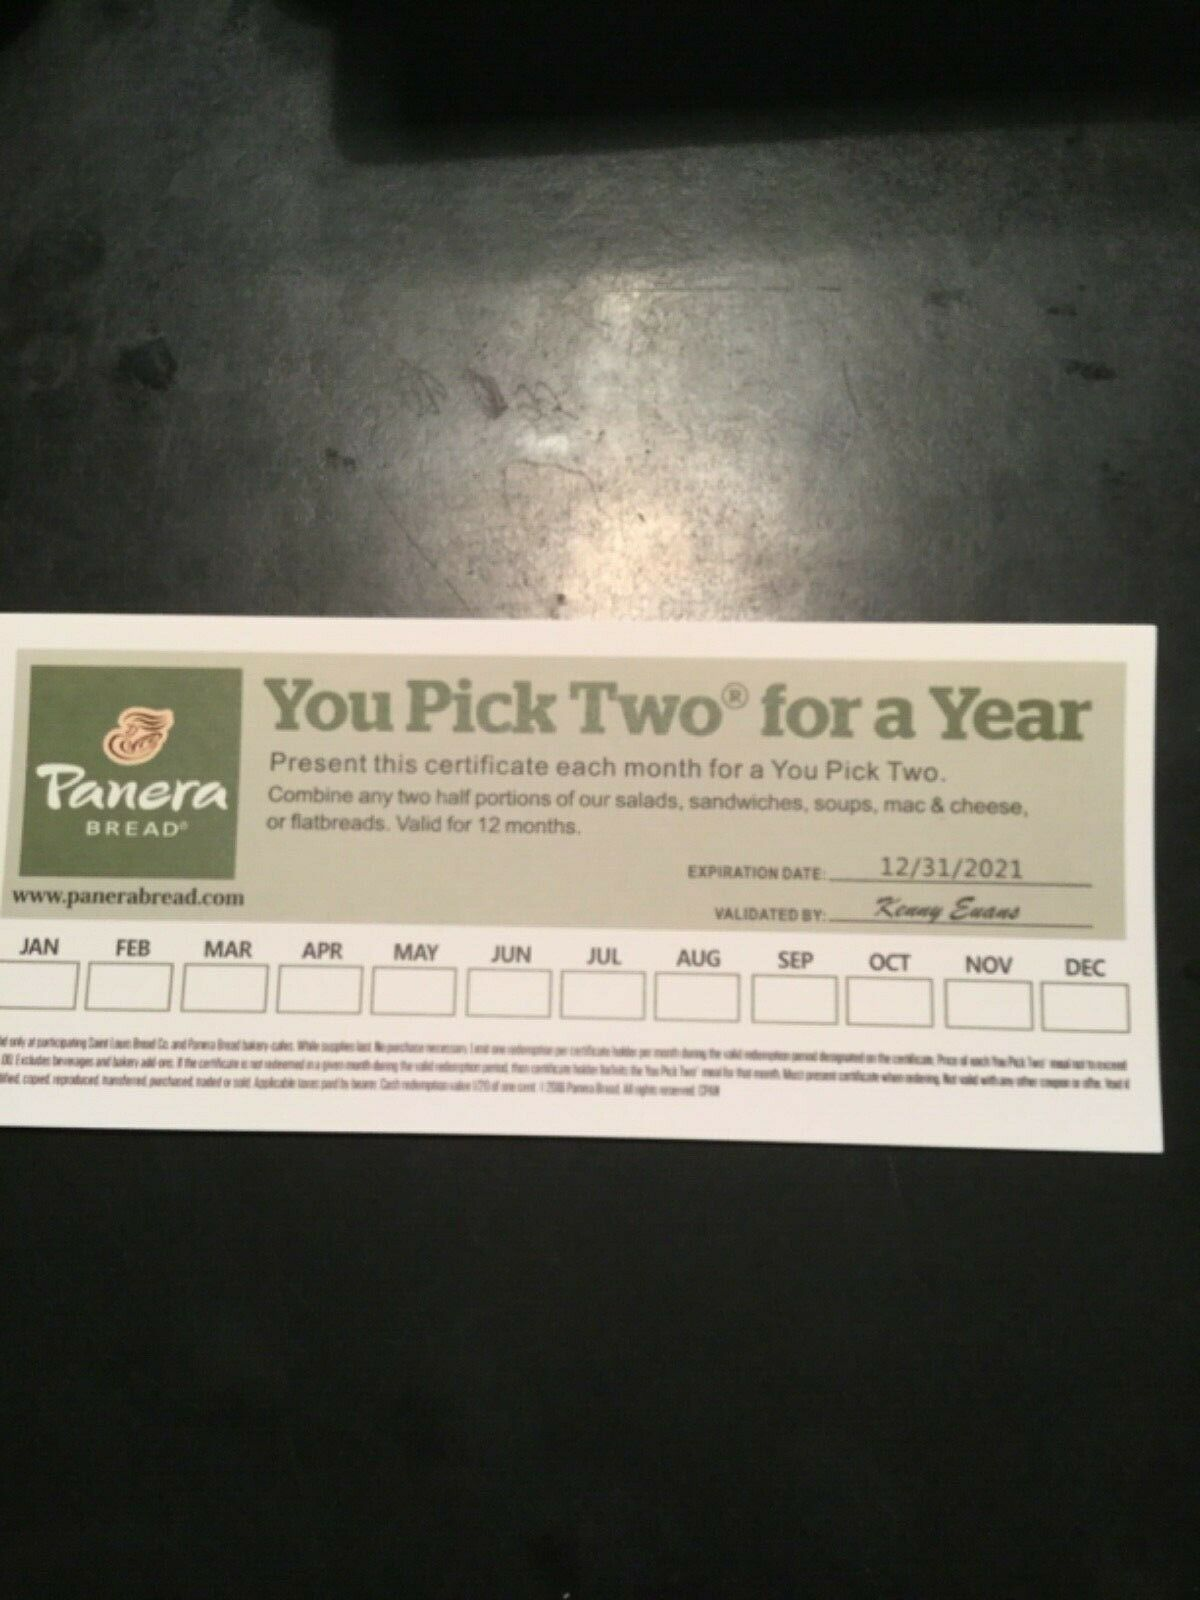 PANERA BREAD GIFT CARD PAPER YOU PICK TWO FOR A YEAR 12/31/21 Expiration  - $59.99